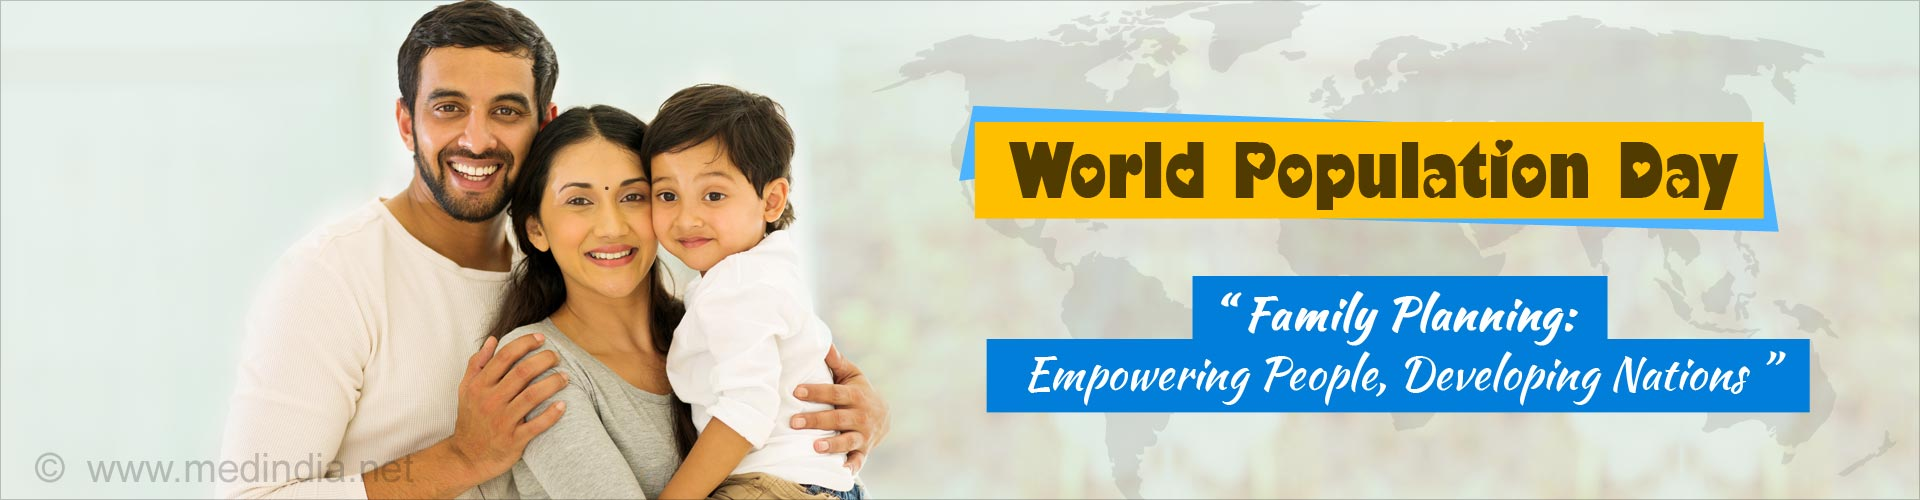 World Population Day 2017-- Family Planning: Empowering People, Developing Nations